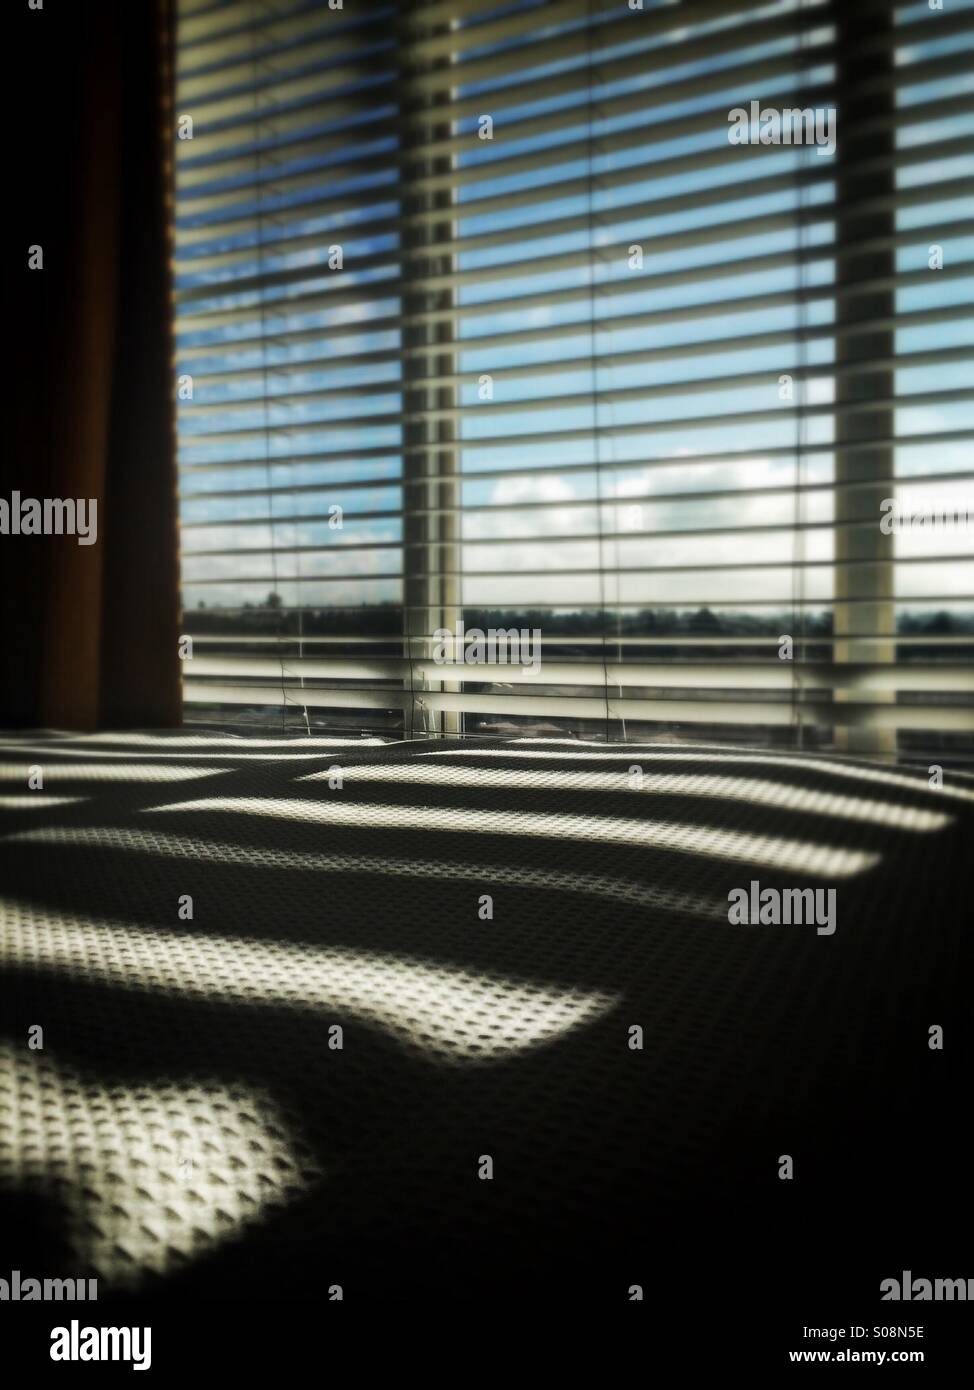 Window Venetian Blinds Casting Shadows On Bed Stock Photo 309978858